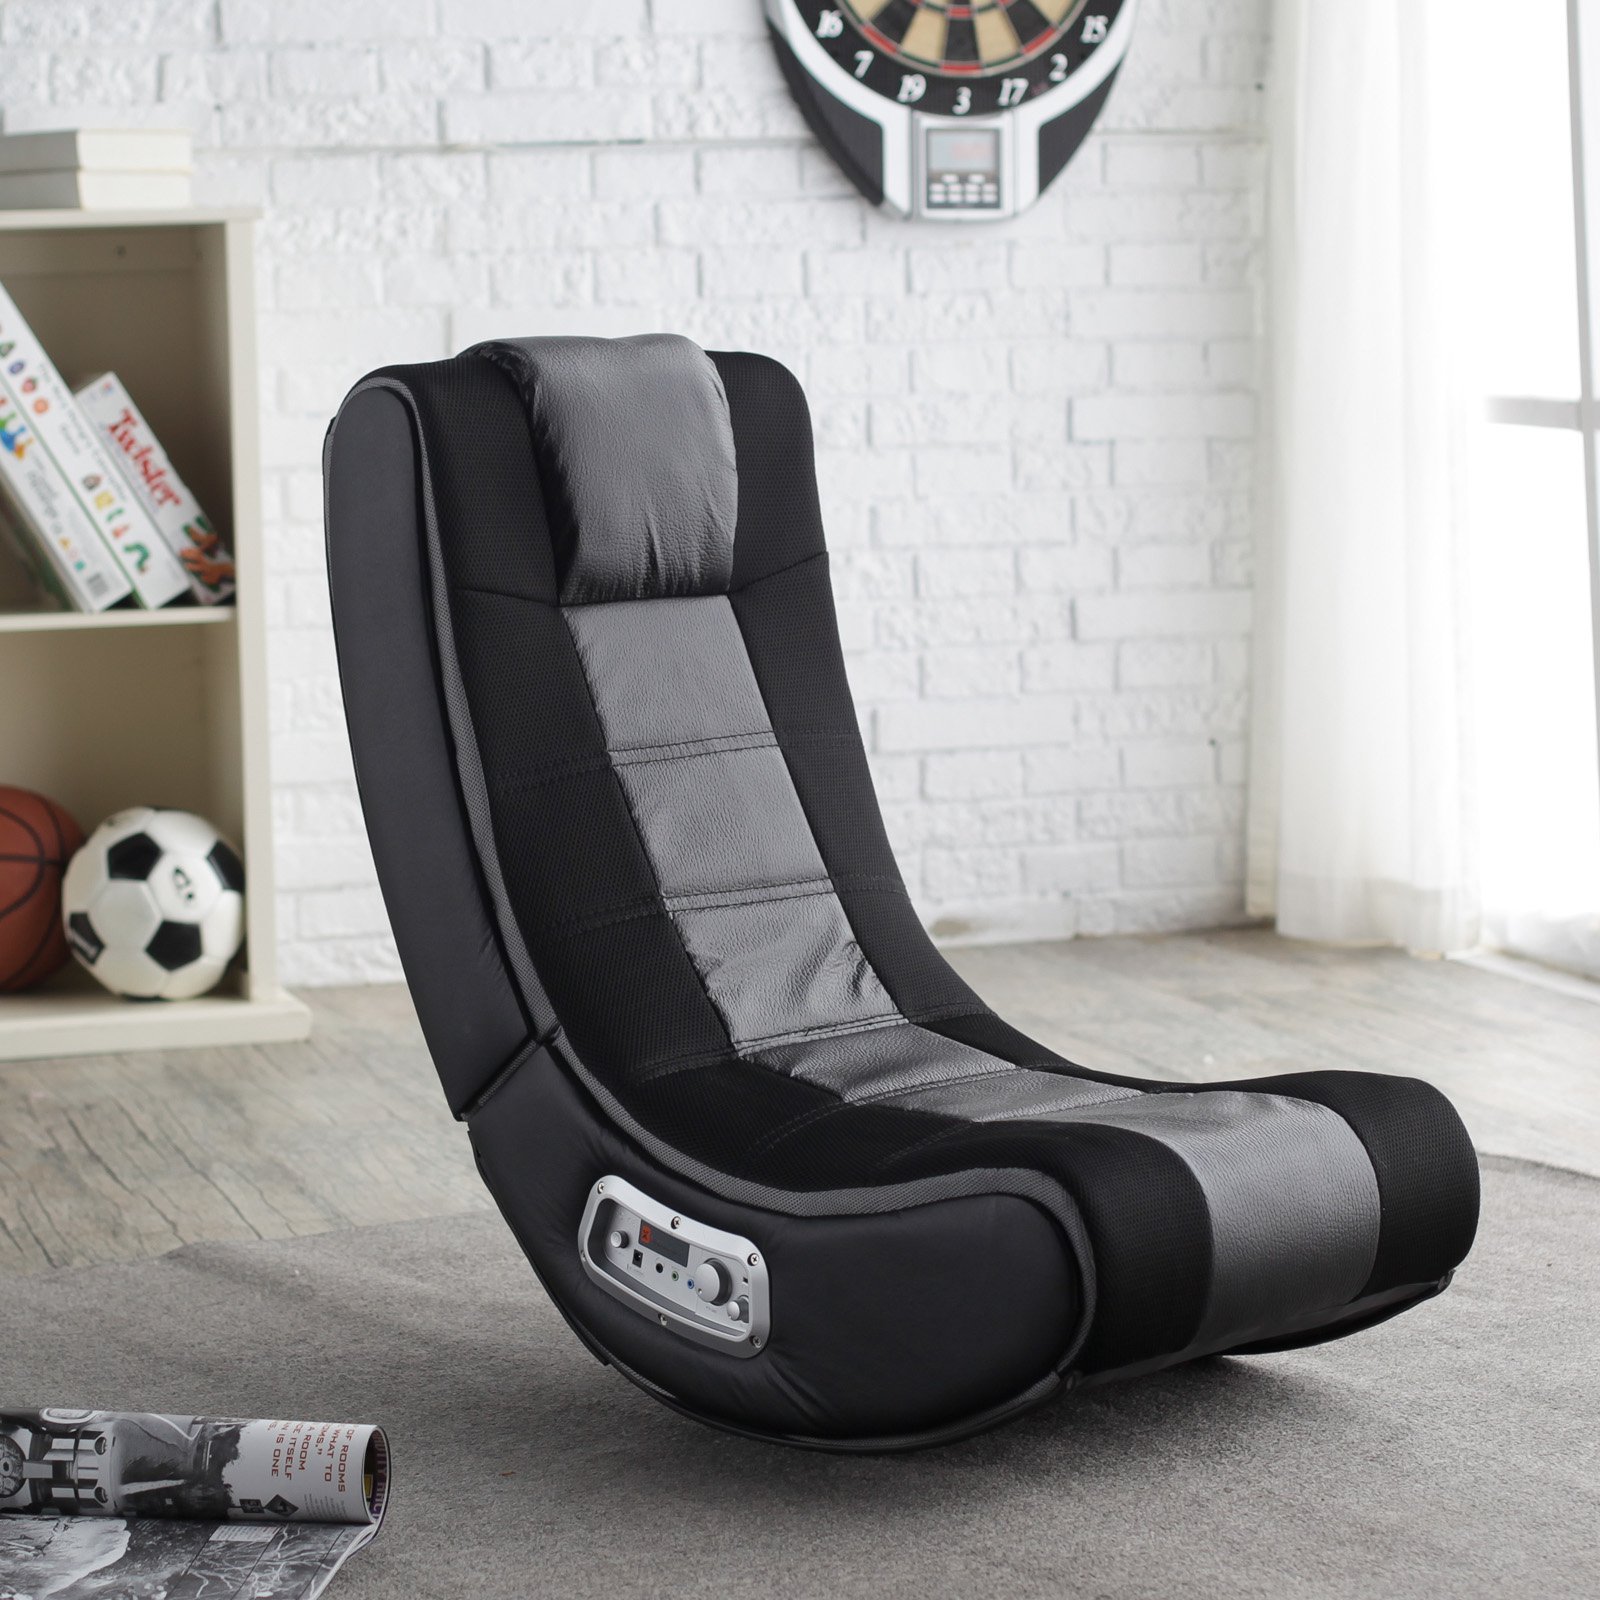 chairs for gaming staples executive chair wireless xbox 360 home furniture design